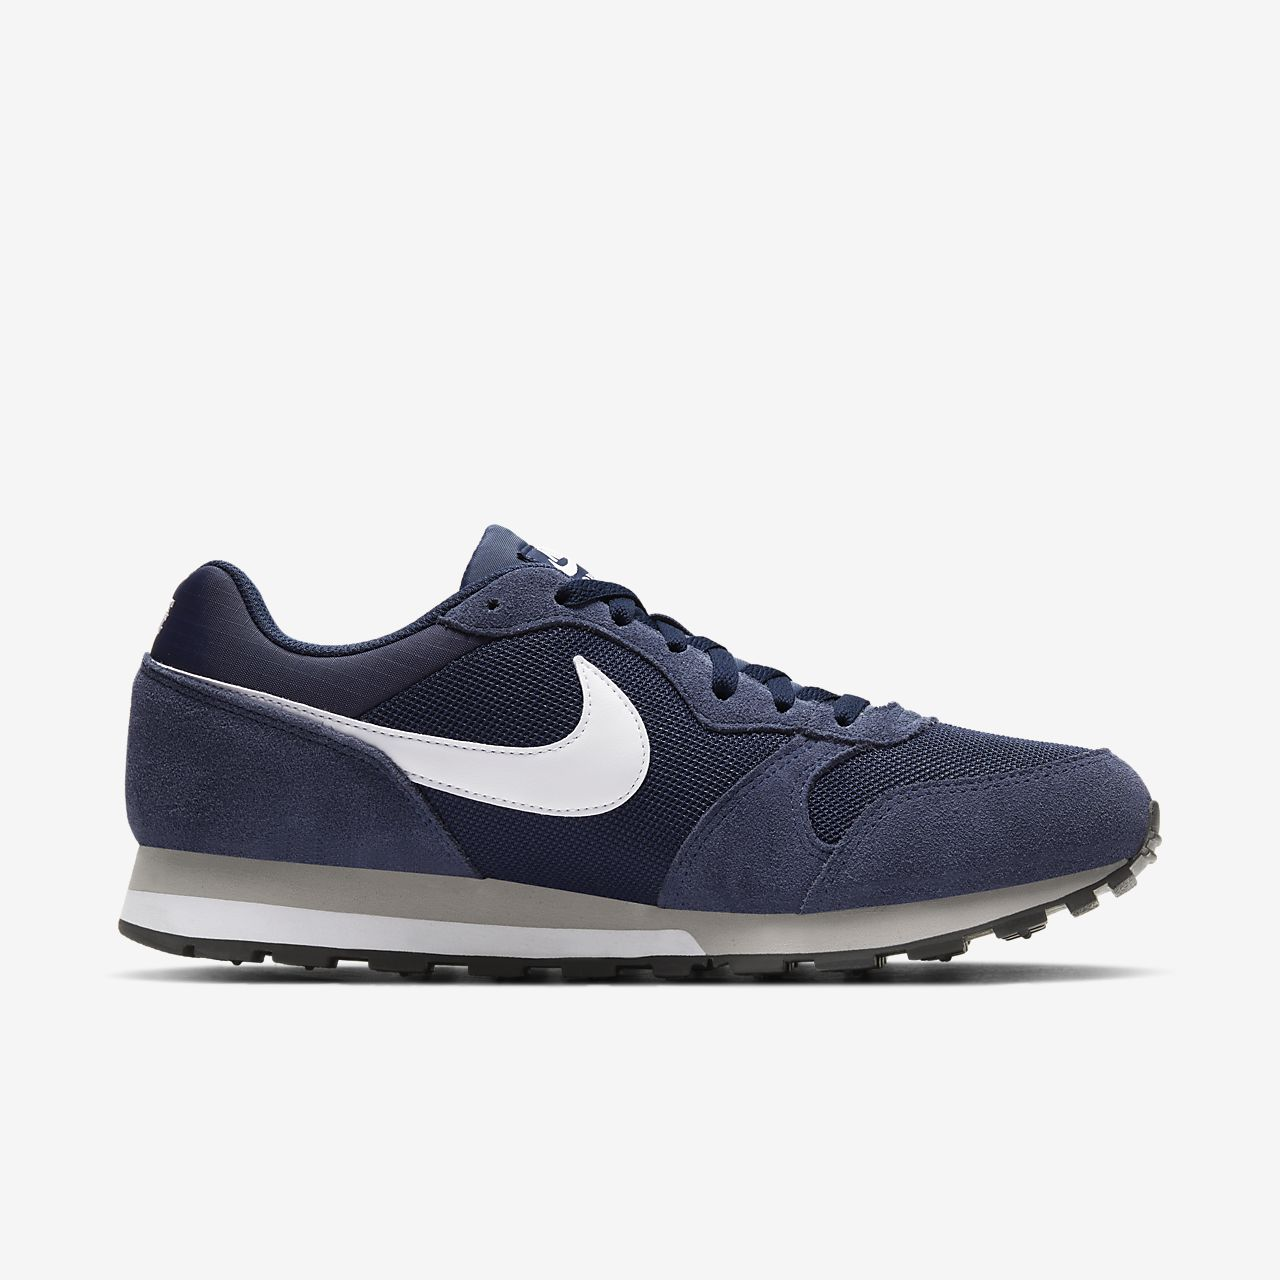 Baskets Nike Homme Nike MD Runner 2 FR hb16qj5C